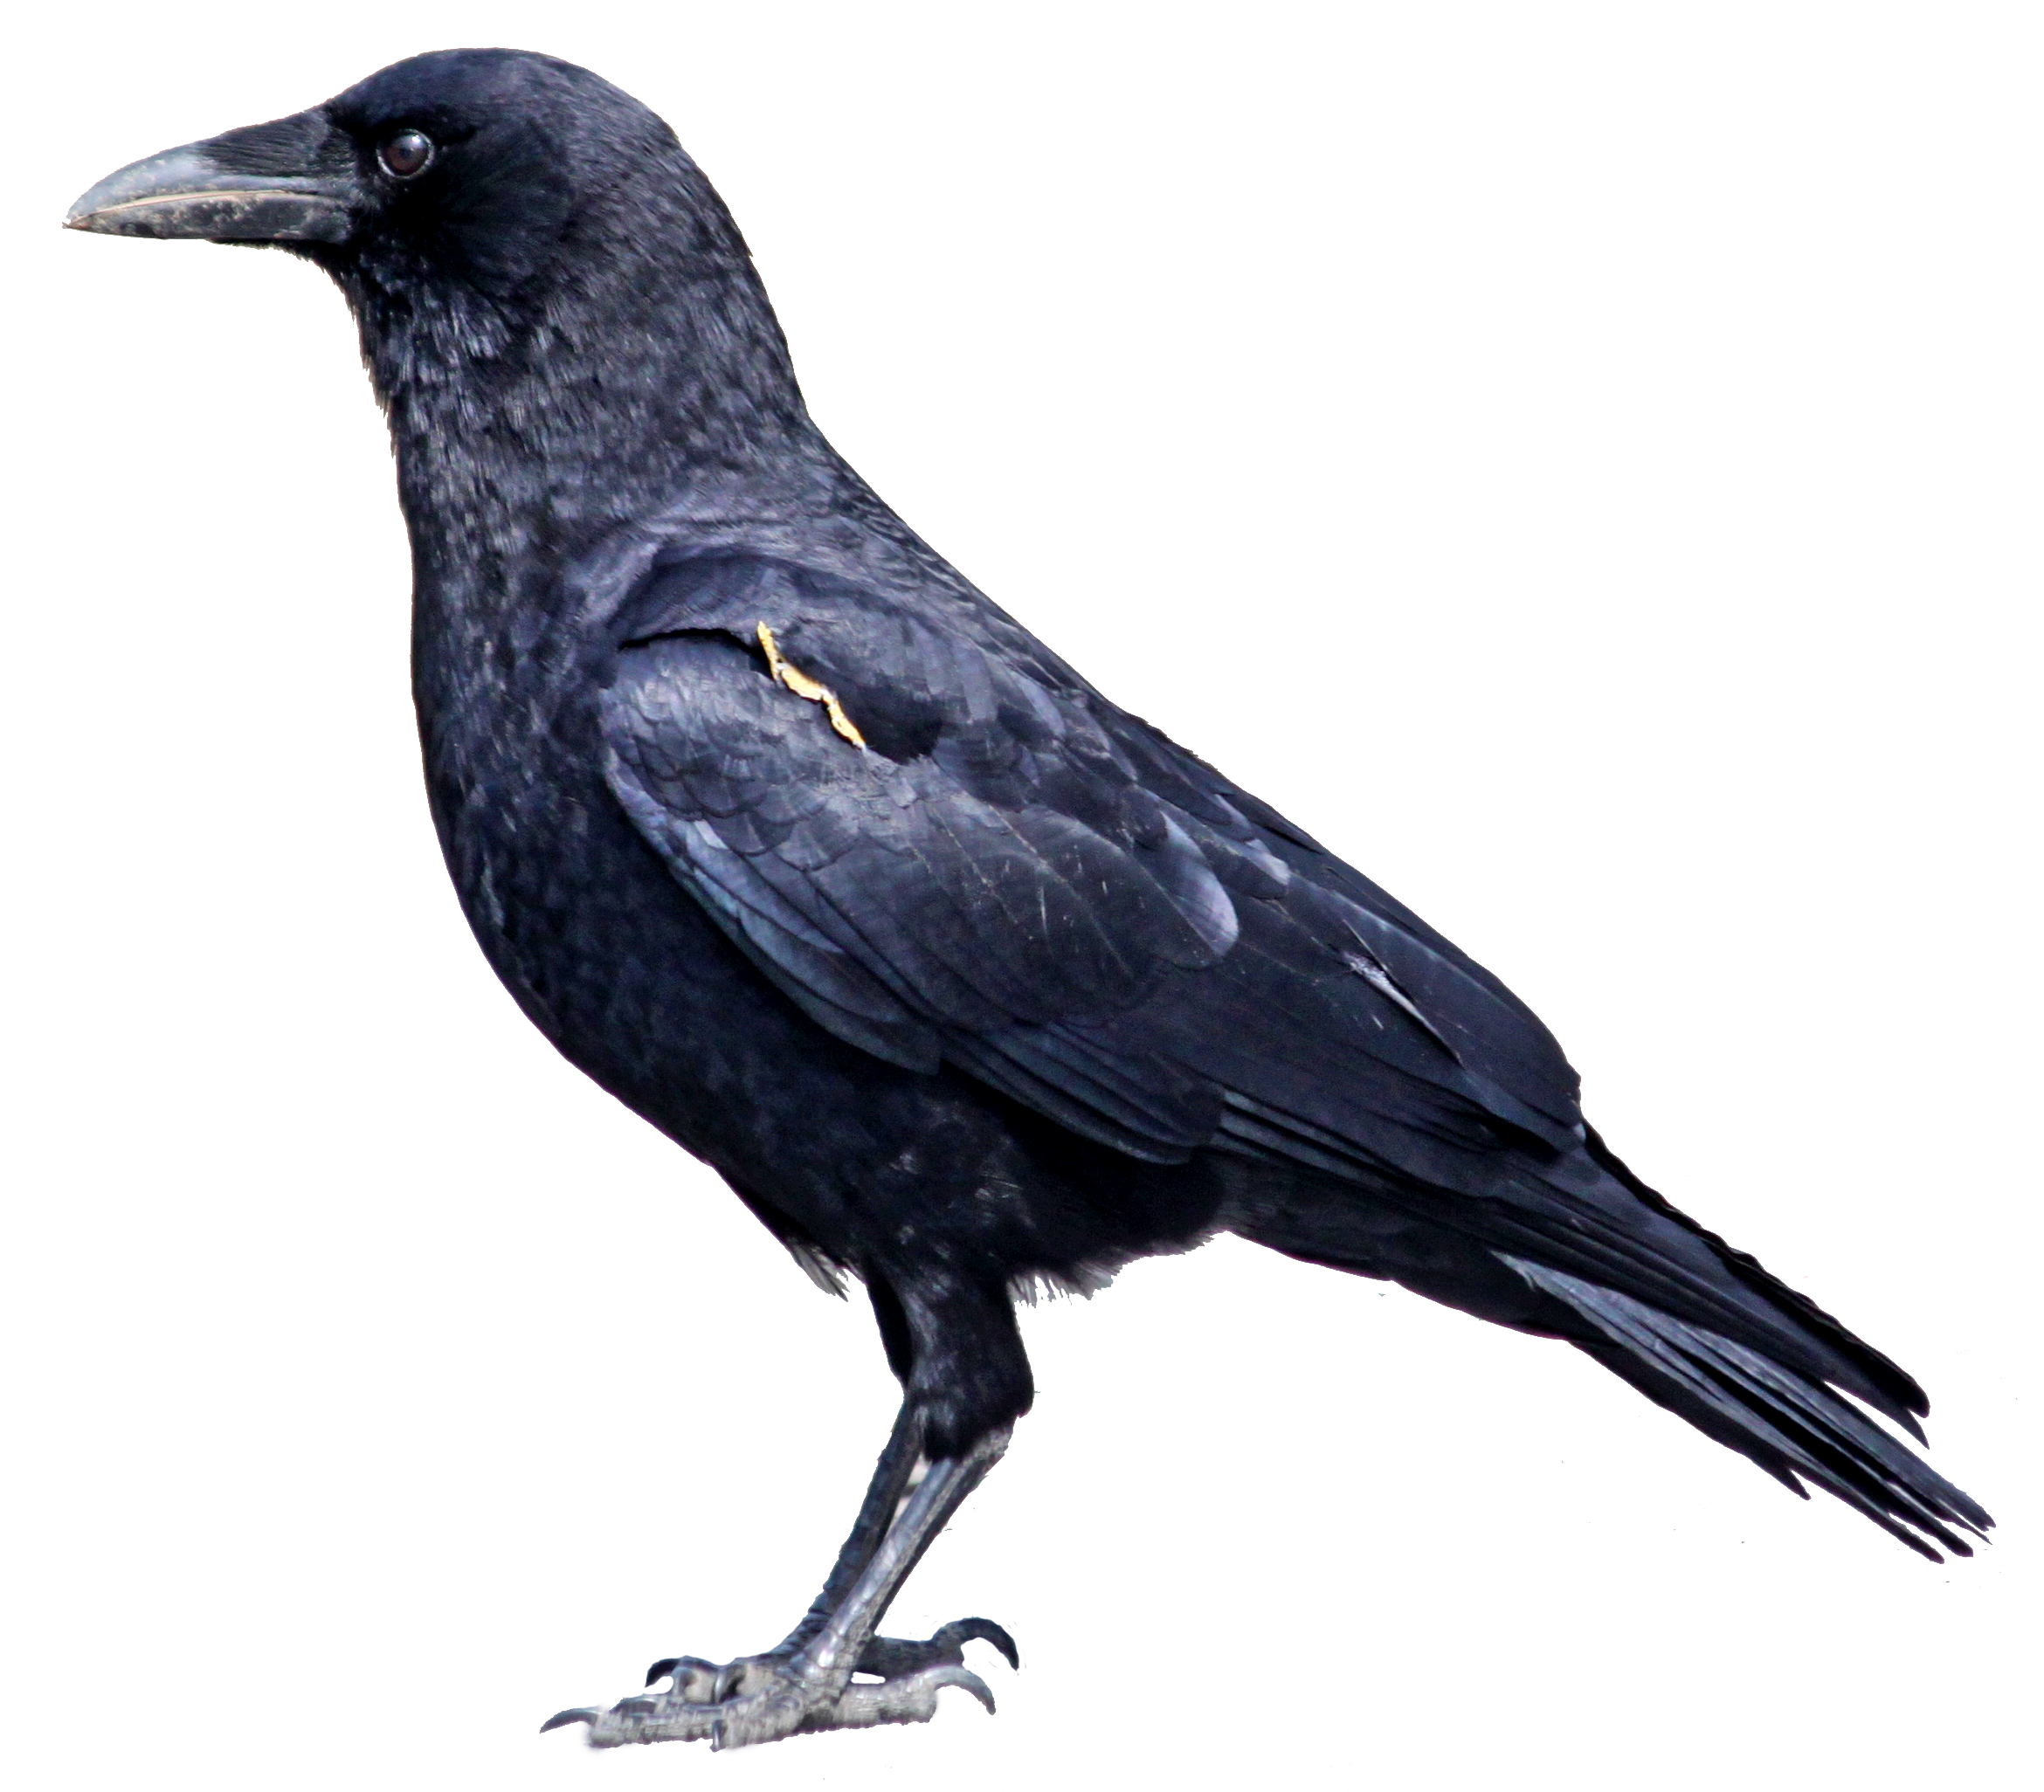 Raven Bird Photos PNG Image